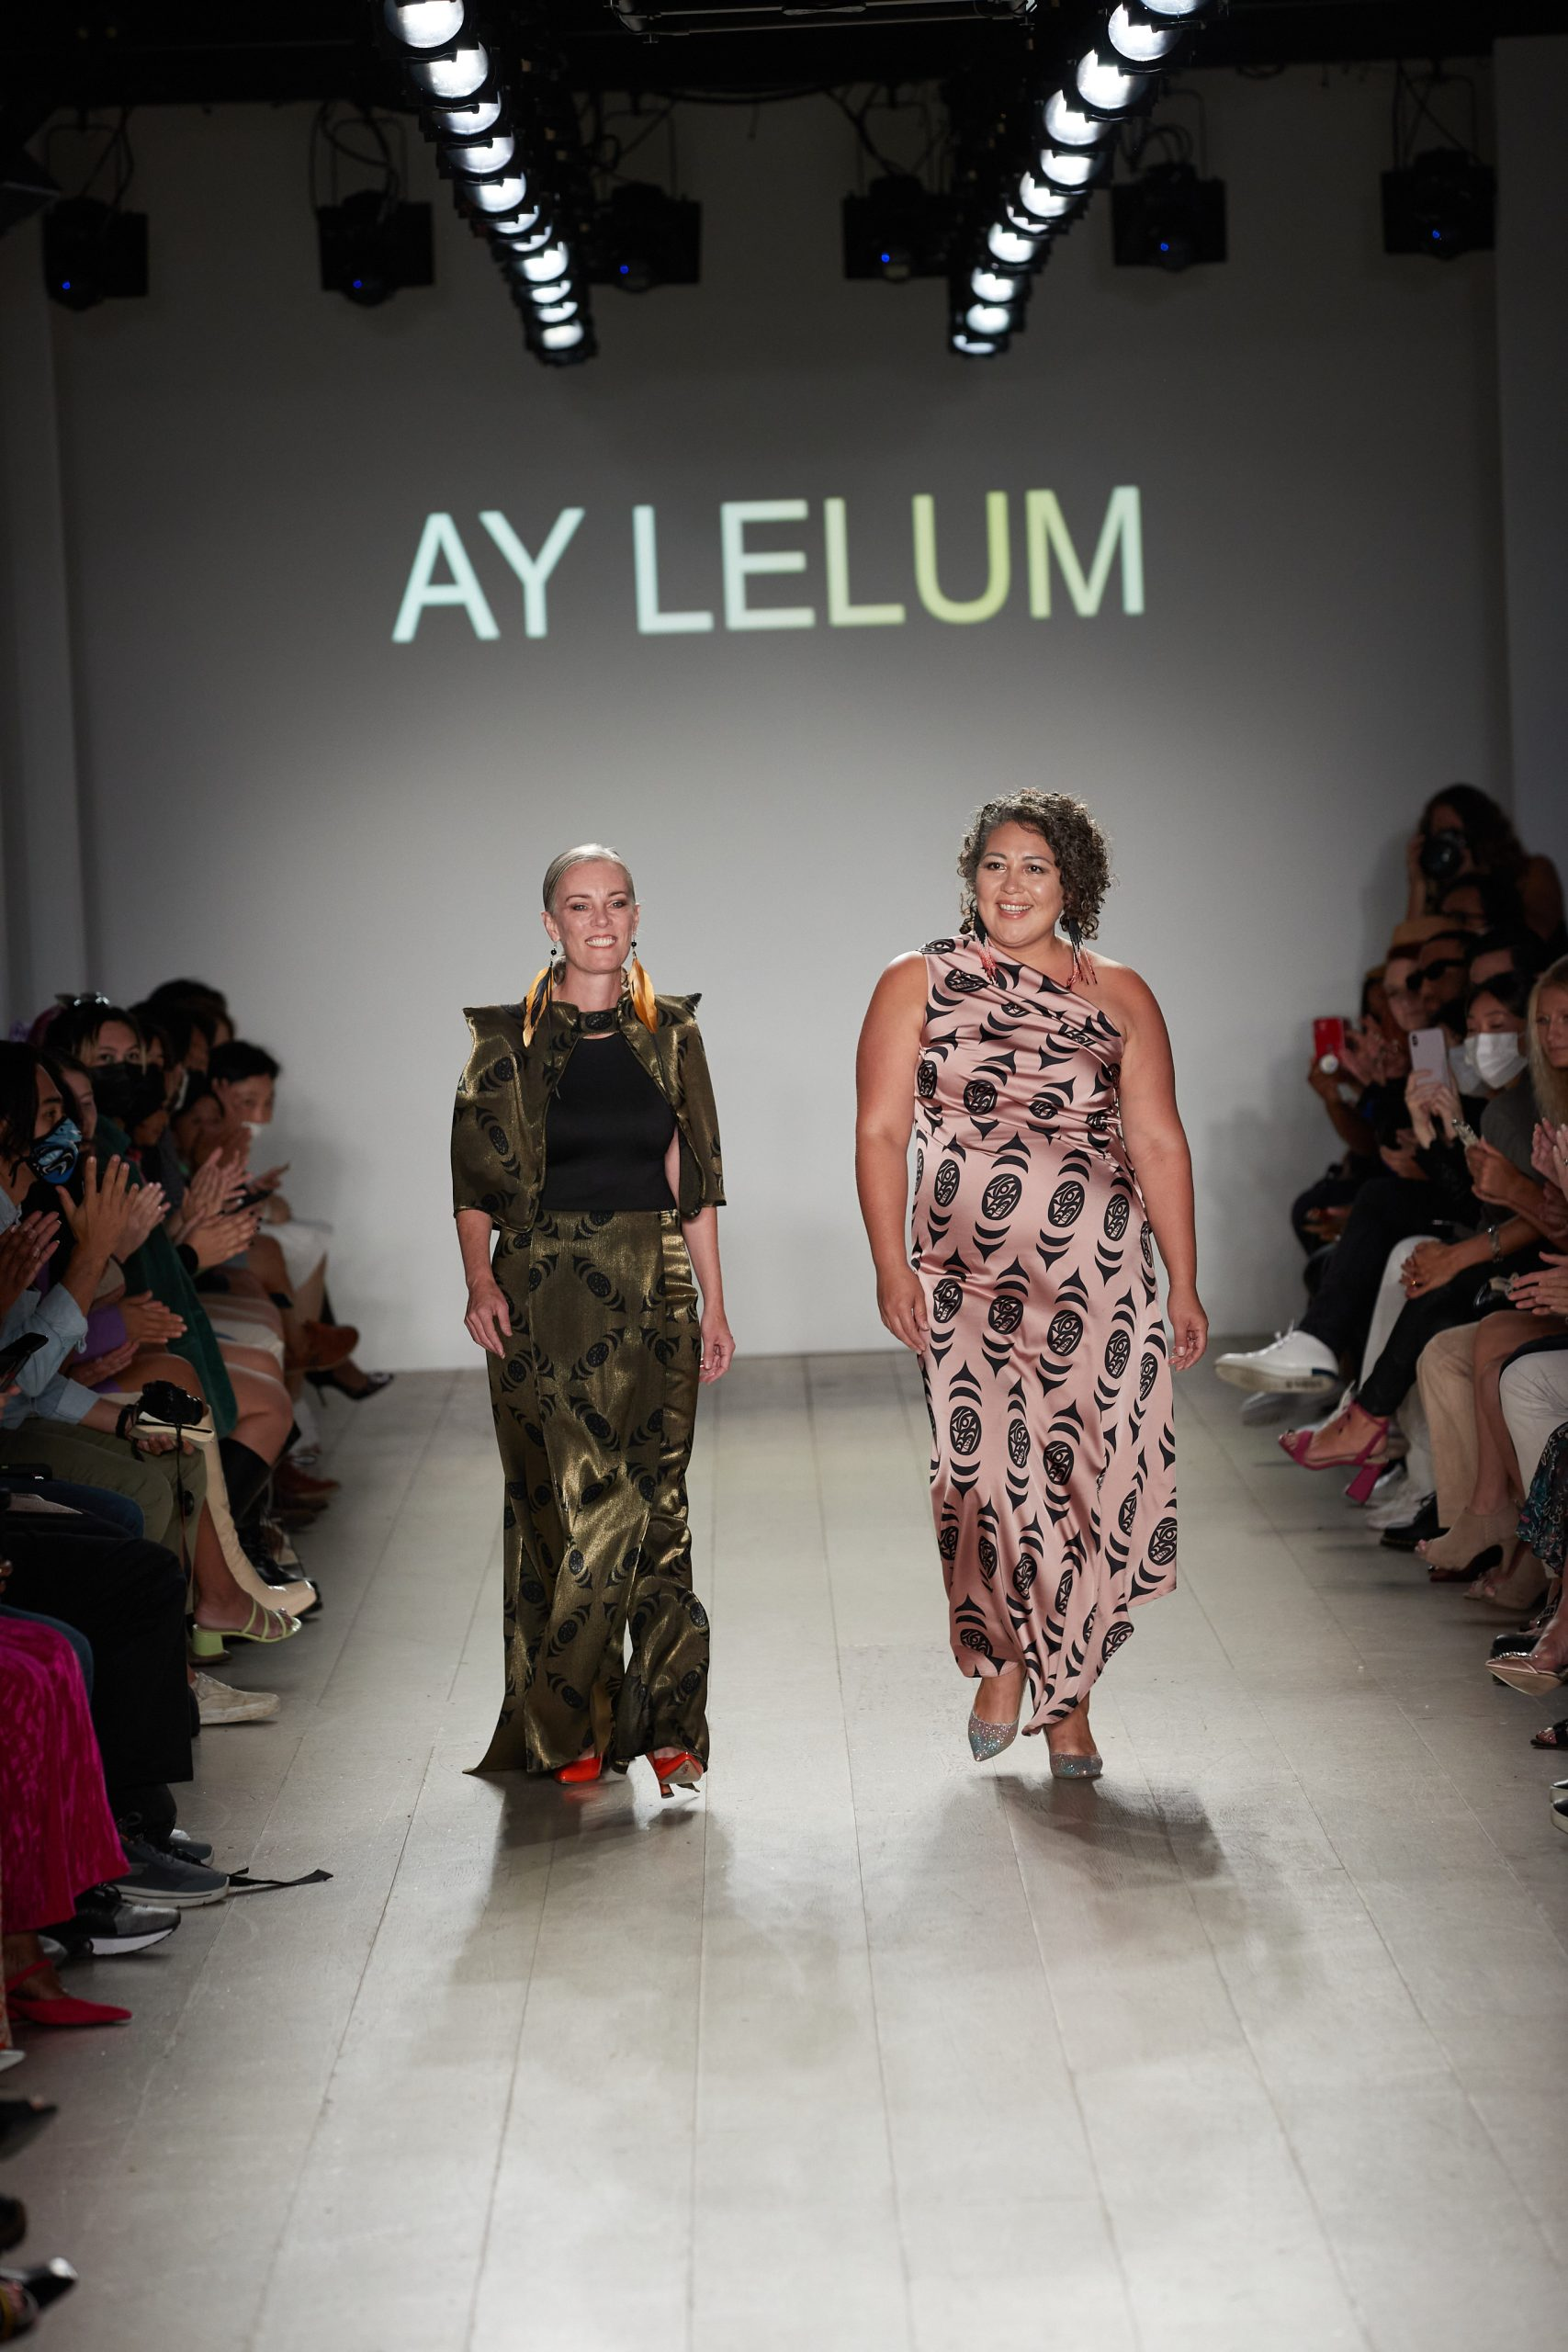 Aunalee Boyd-Good and Sophia Seward-Good stand at the end of the runway at their New York City showcase. Their brand name Ay Lelum is written behind them